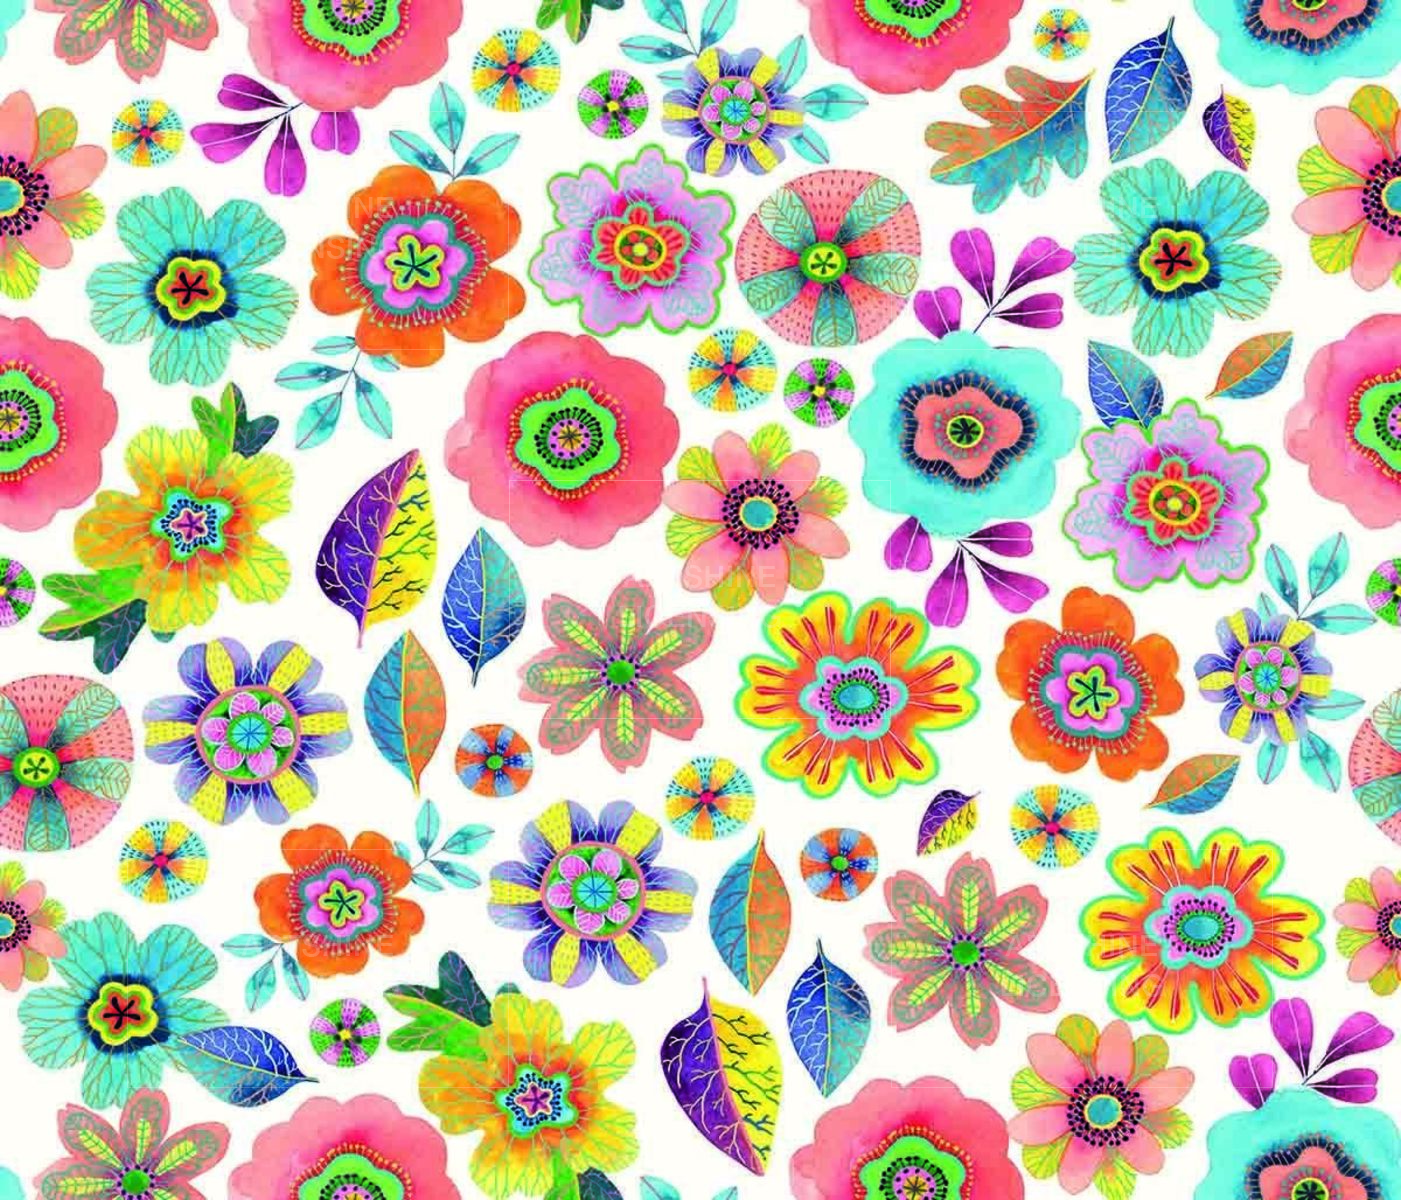 Abstract floral pattern repeat